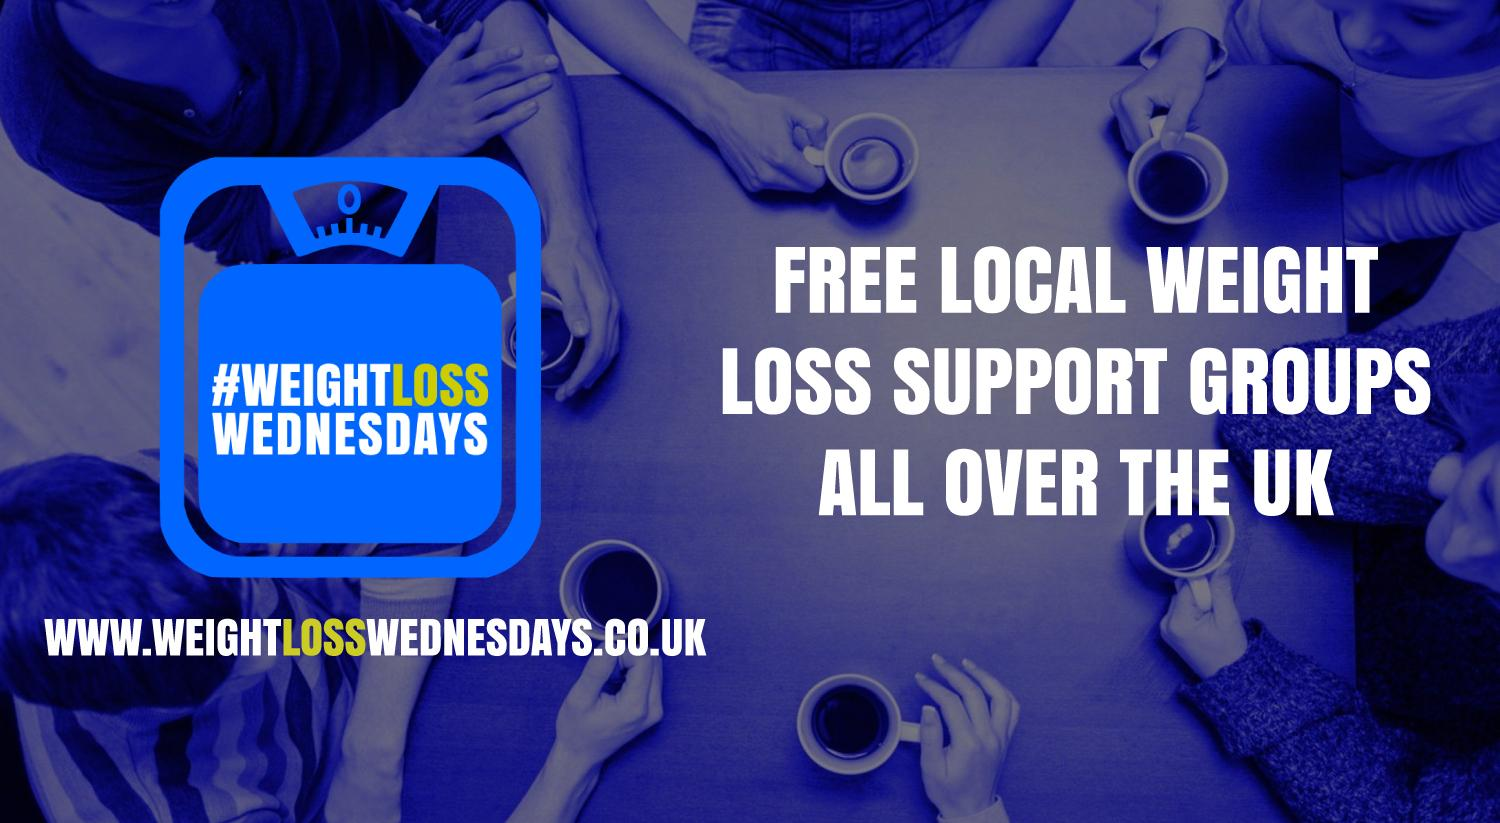 WEIGHT LOSS WEDNESDAYS! Free weekly support group in Edinburgh